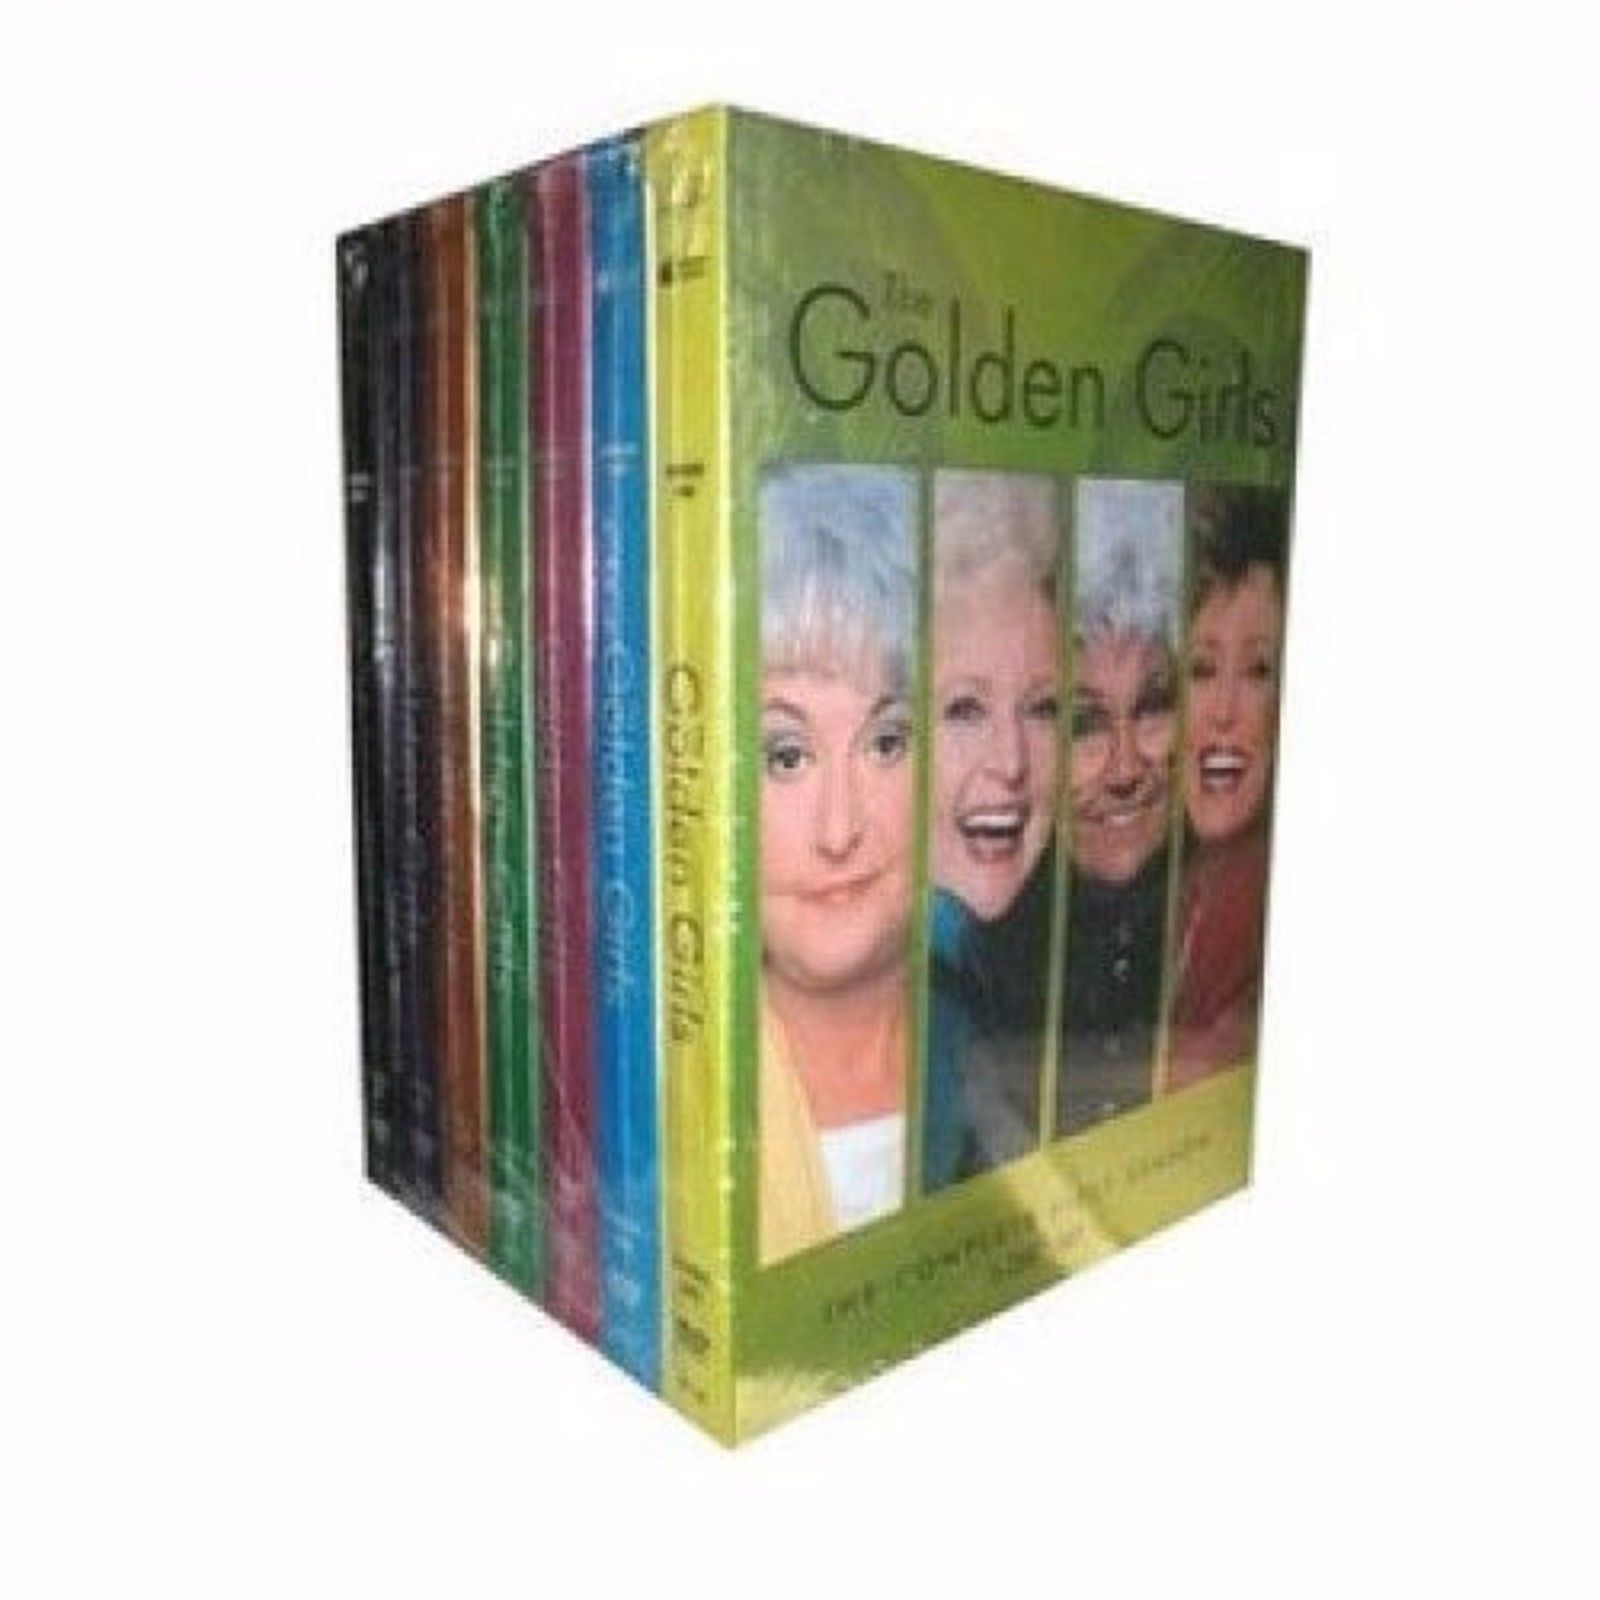 The Golden Girls Complete Series 1-7 Seasons (DVD Sets New) TV Comedy Show